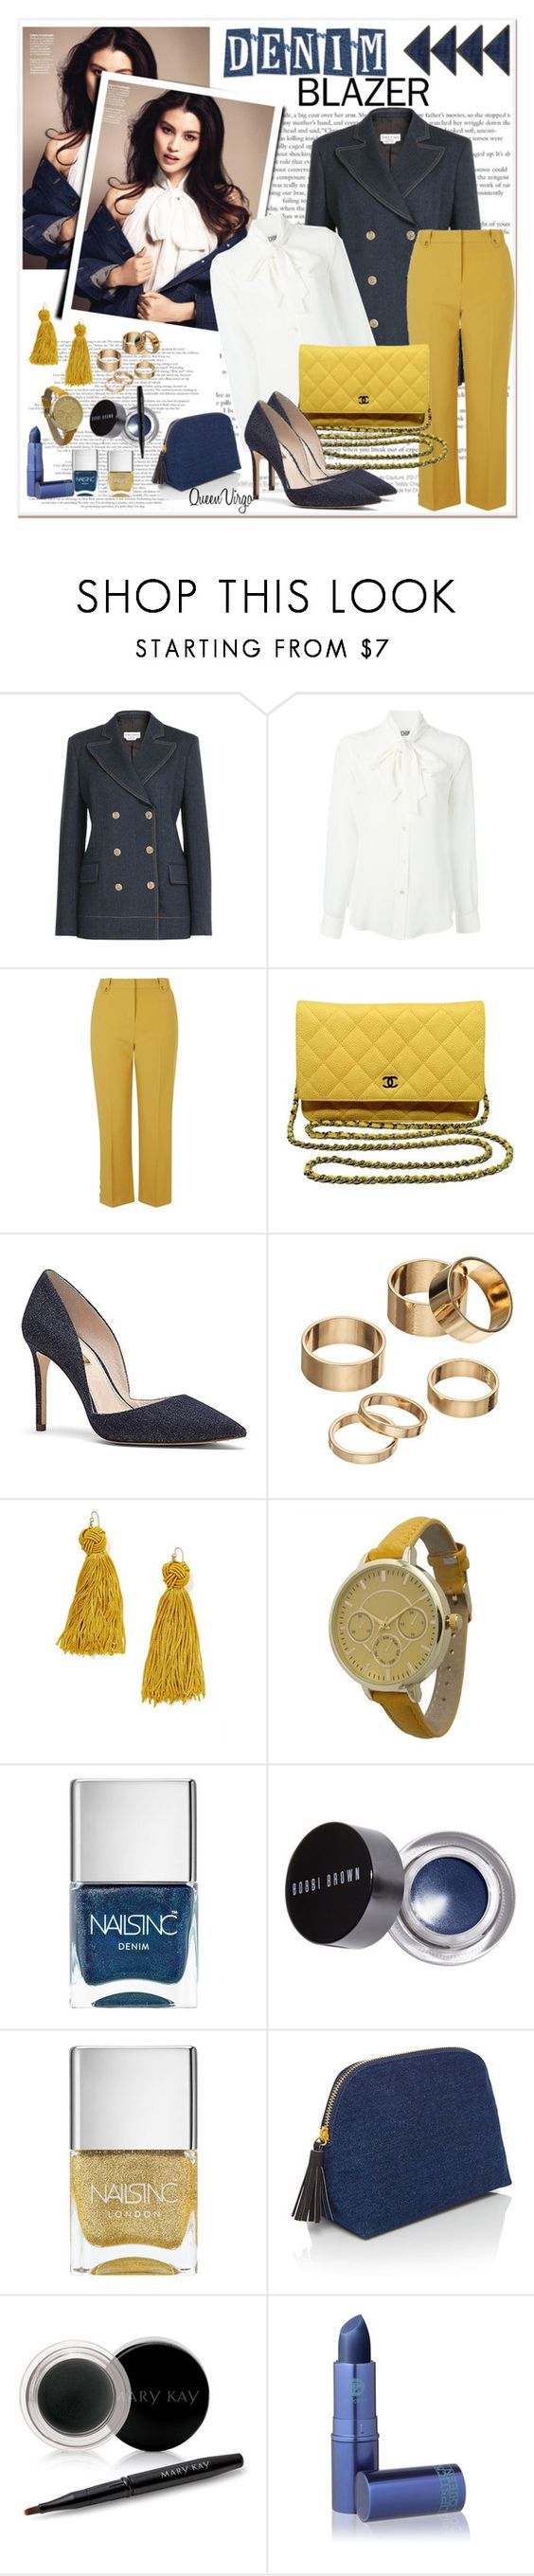 """Denim Blazer"" by queenvirgo ❤ liked on Polyvore featuring Sonia Rykiel, Moschino, Topshop, Chanel, Vince Camuto, Apt. 9, Vanessa Mooney, Olivia Pratt, Nails Inc. and Bobbi Brown Cosmetics"